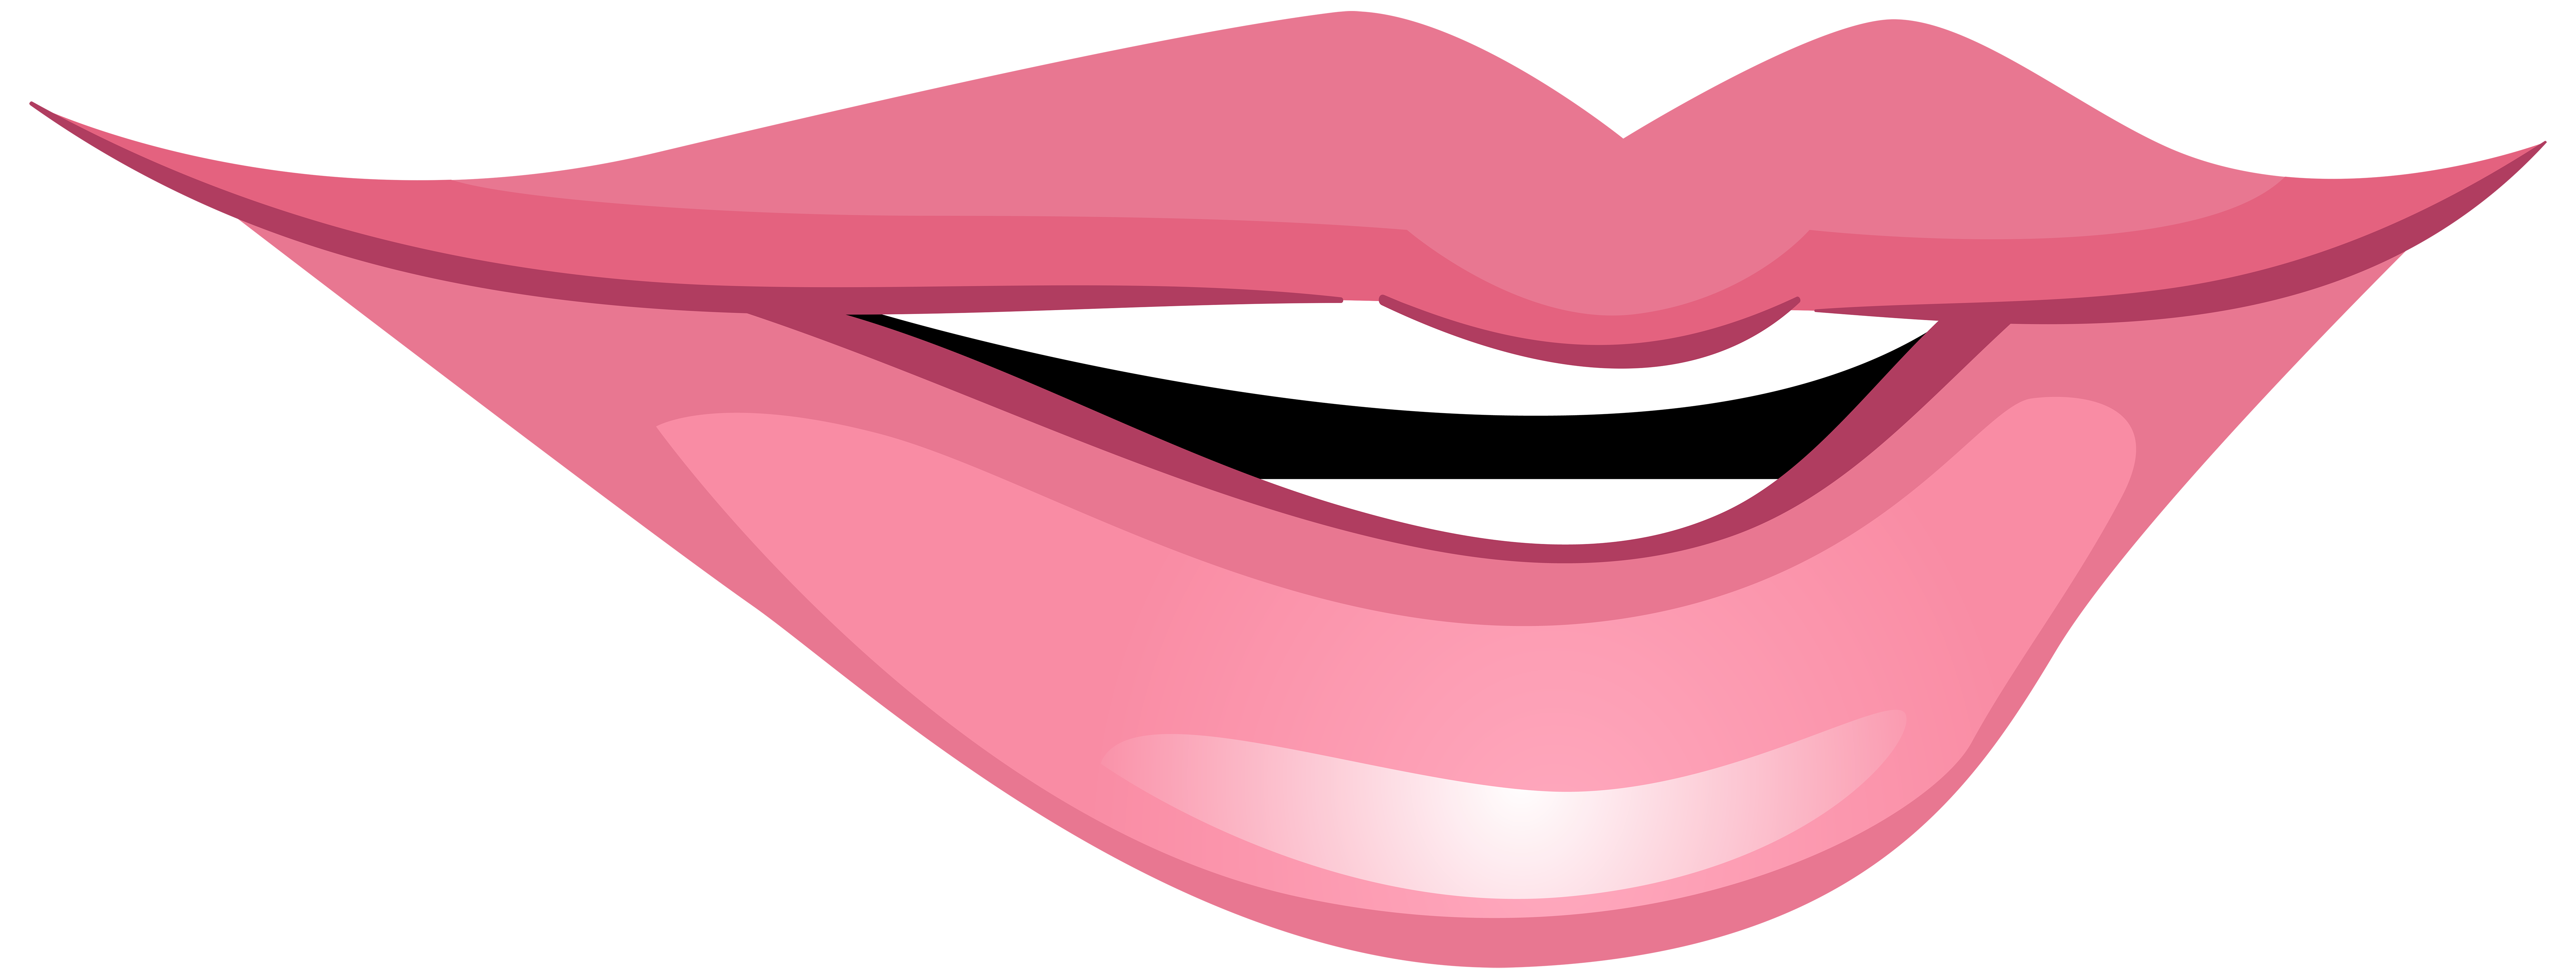 Lip clipart lip open. Pink smiling mouth png